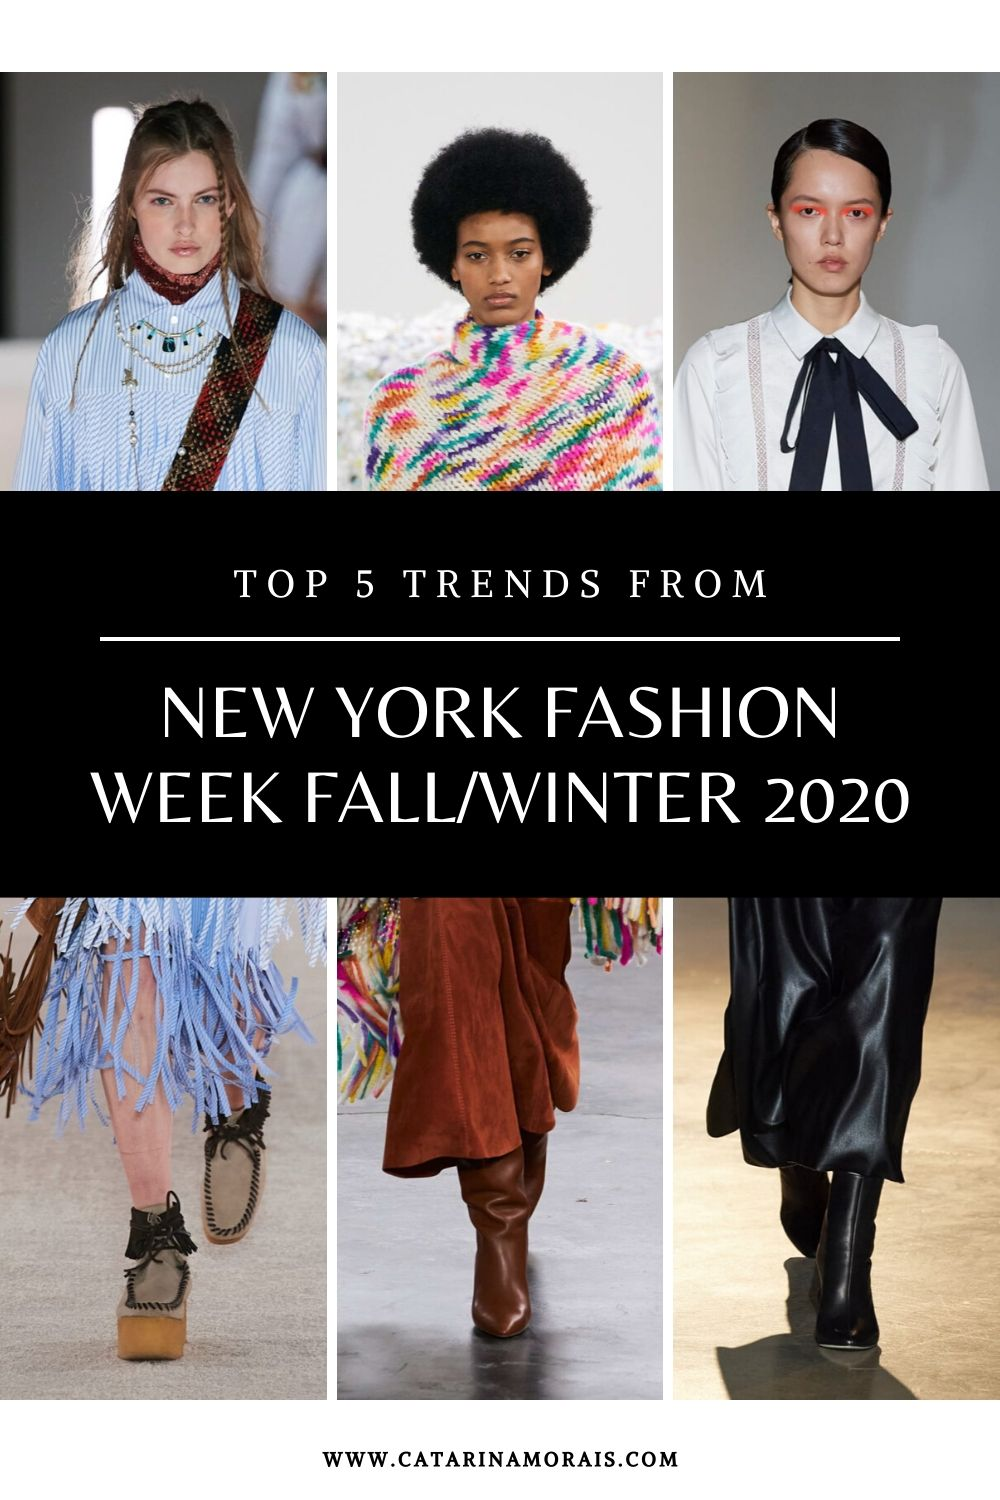 Top 5 trends from New York Fashion Week Fall/Winter 2020